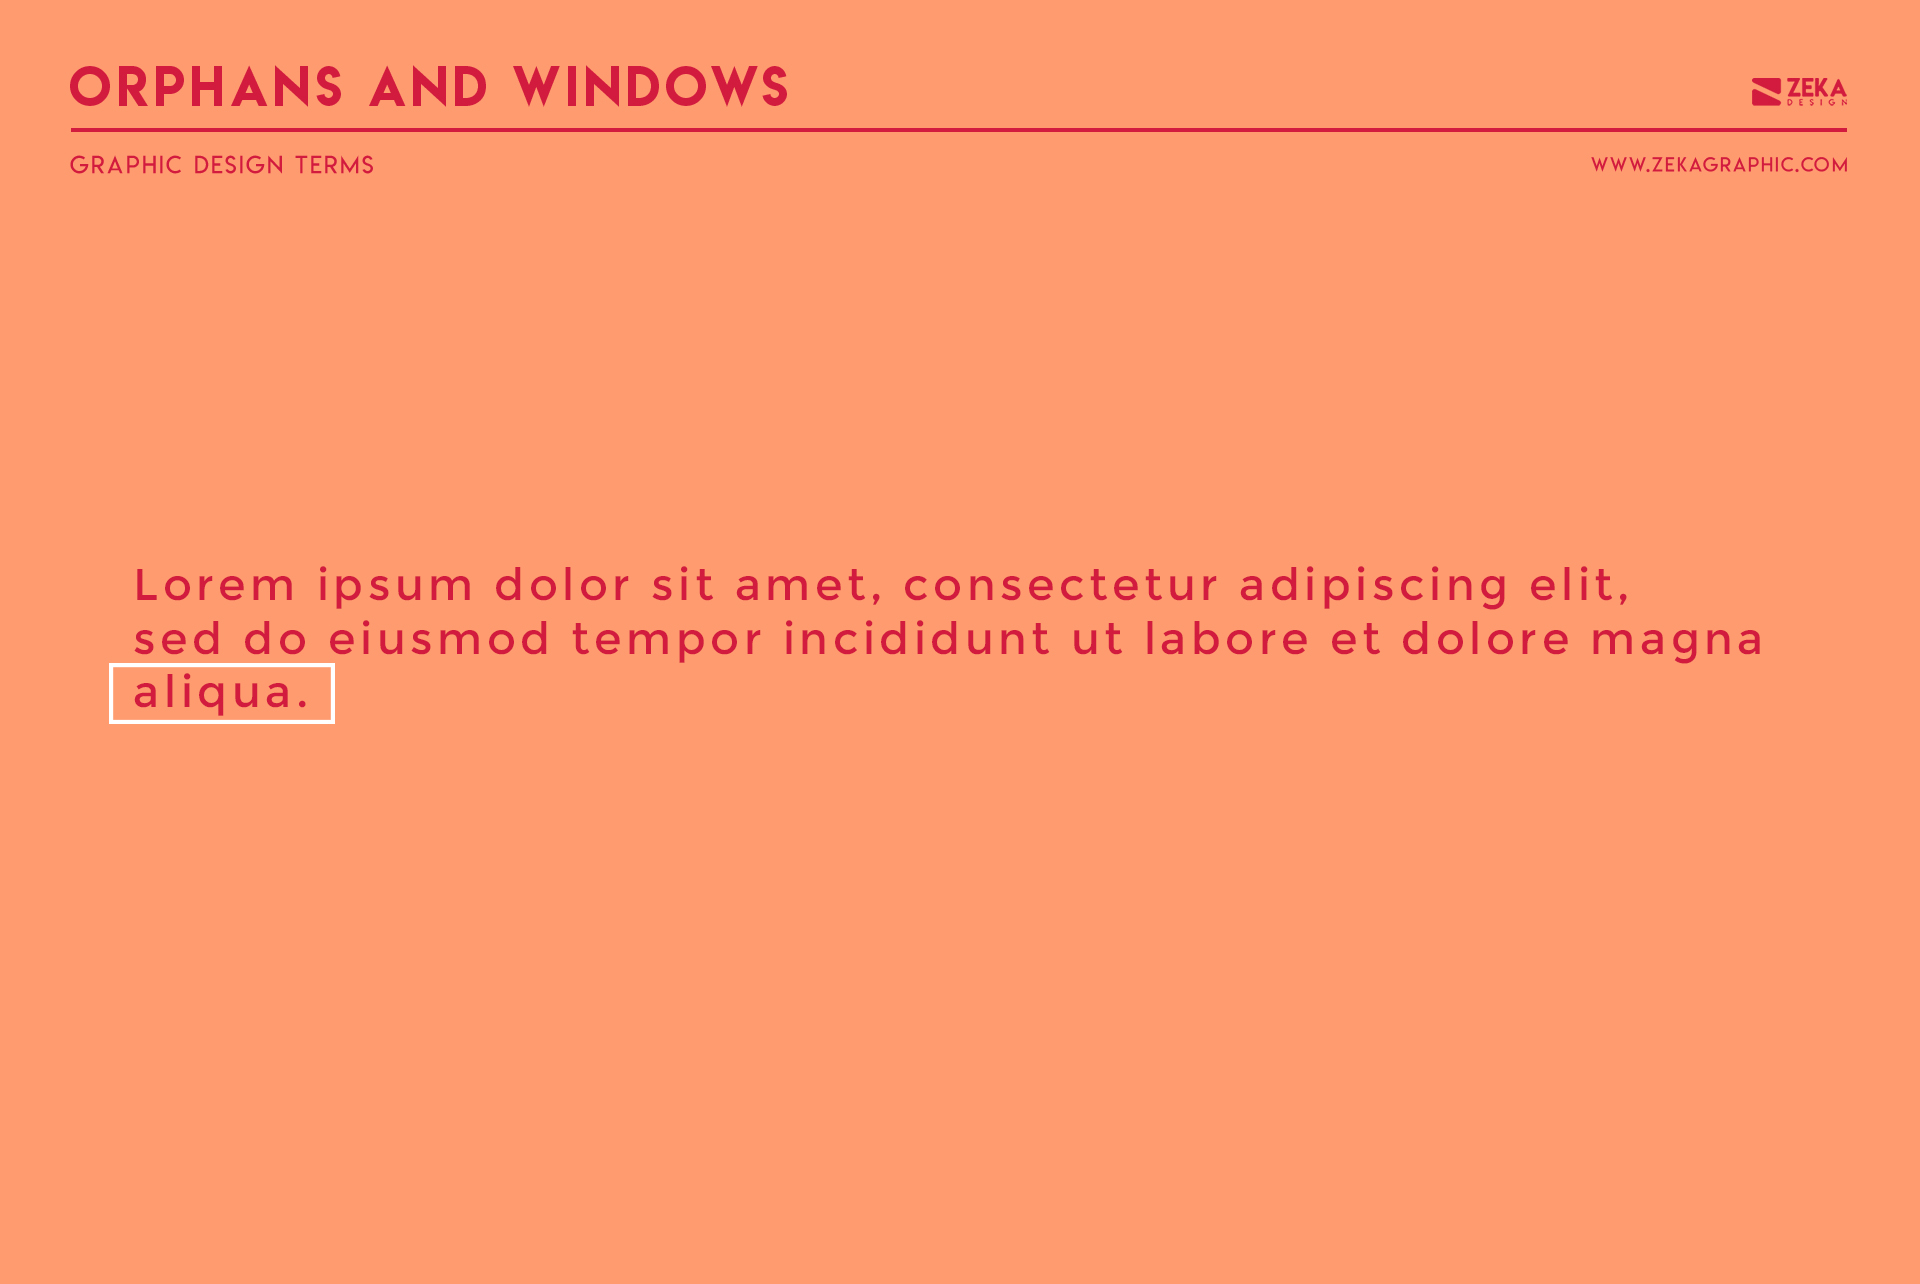 Orphans and Windows Graphic Design Terms